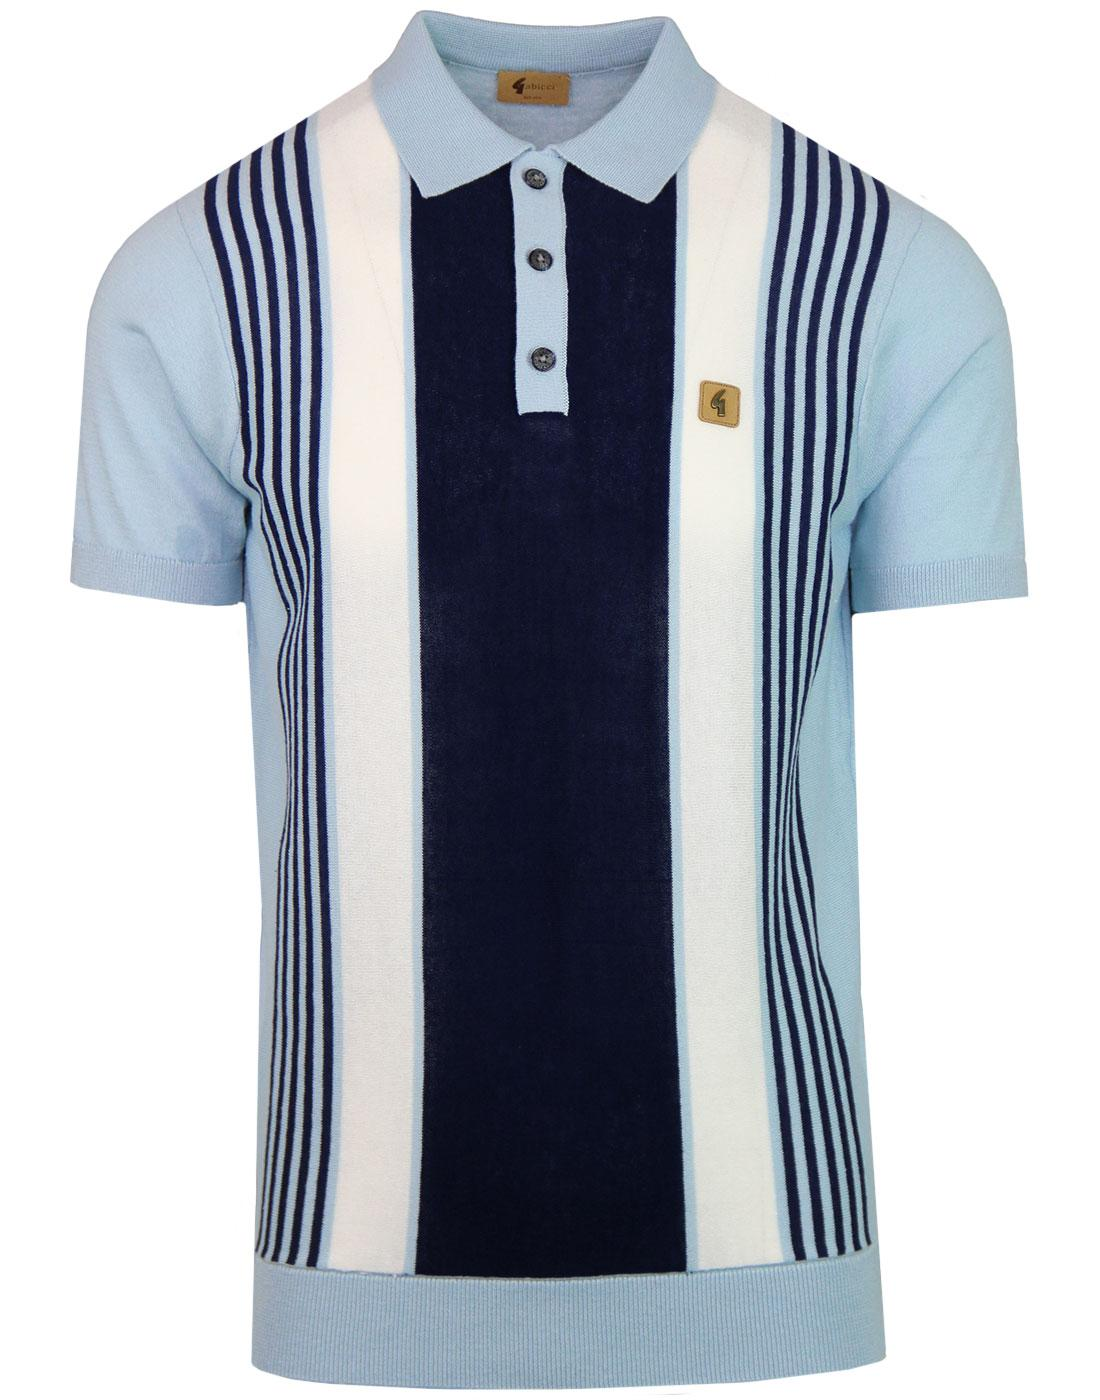 Searle GABICCI VINTAGE Mod Stripe Knit Polo DAWN